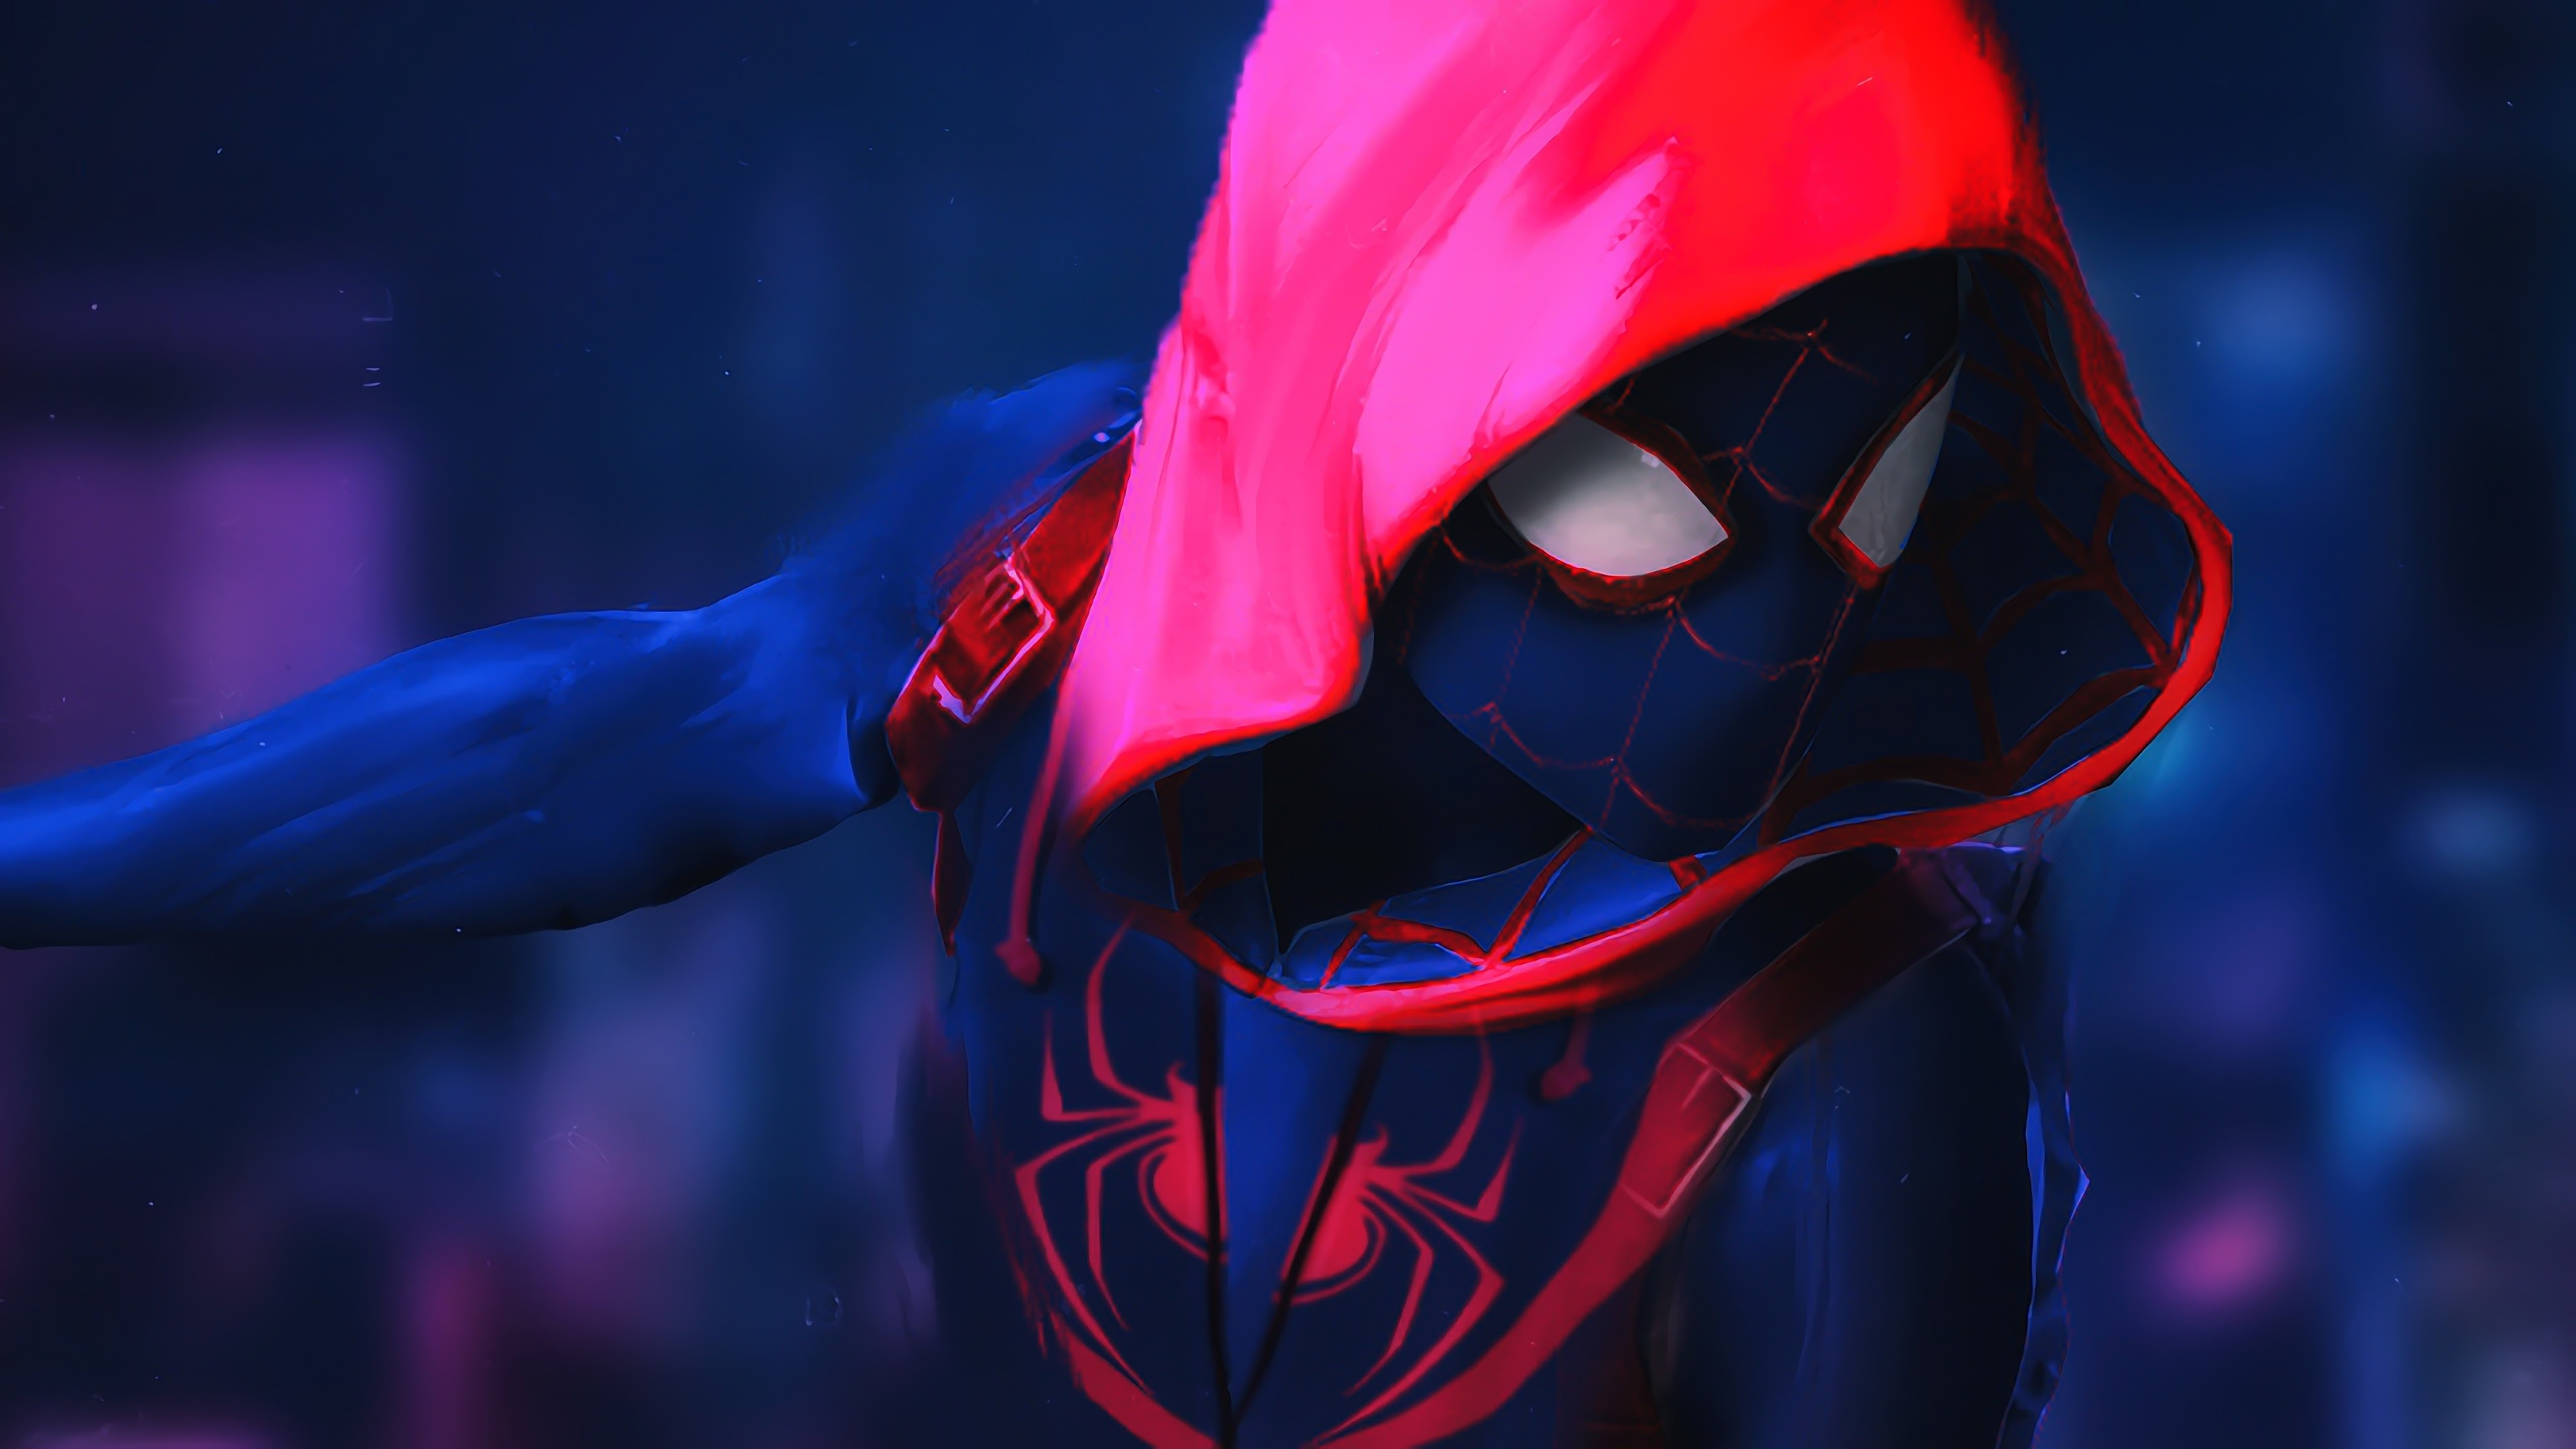 SpiderMan Into The Spider Verse Movie 4k Movie Artwork, HD Movies, 4k Wallpapers, Images